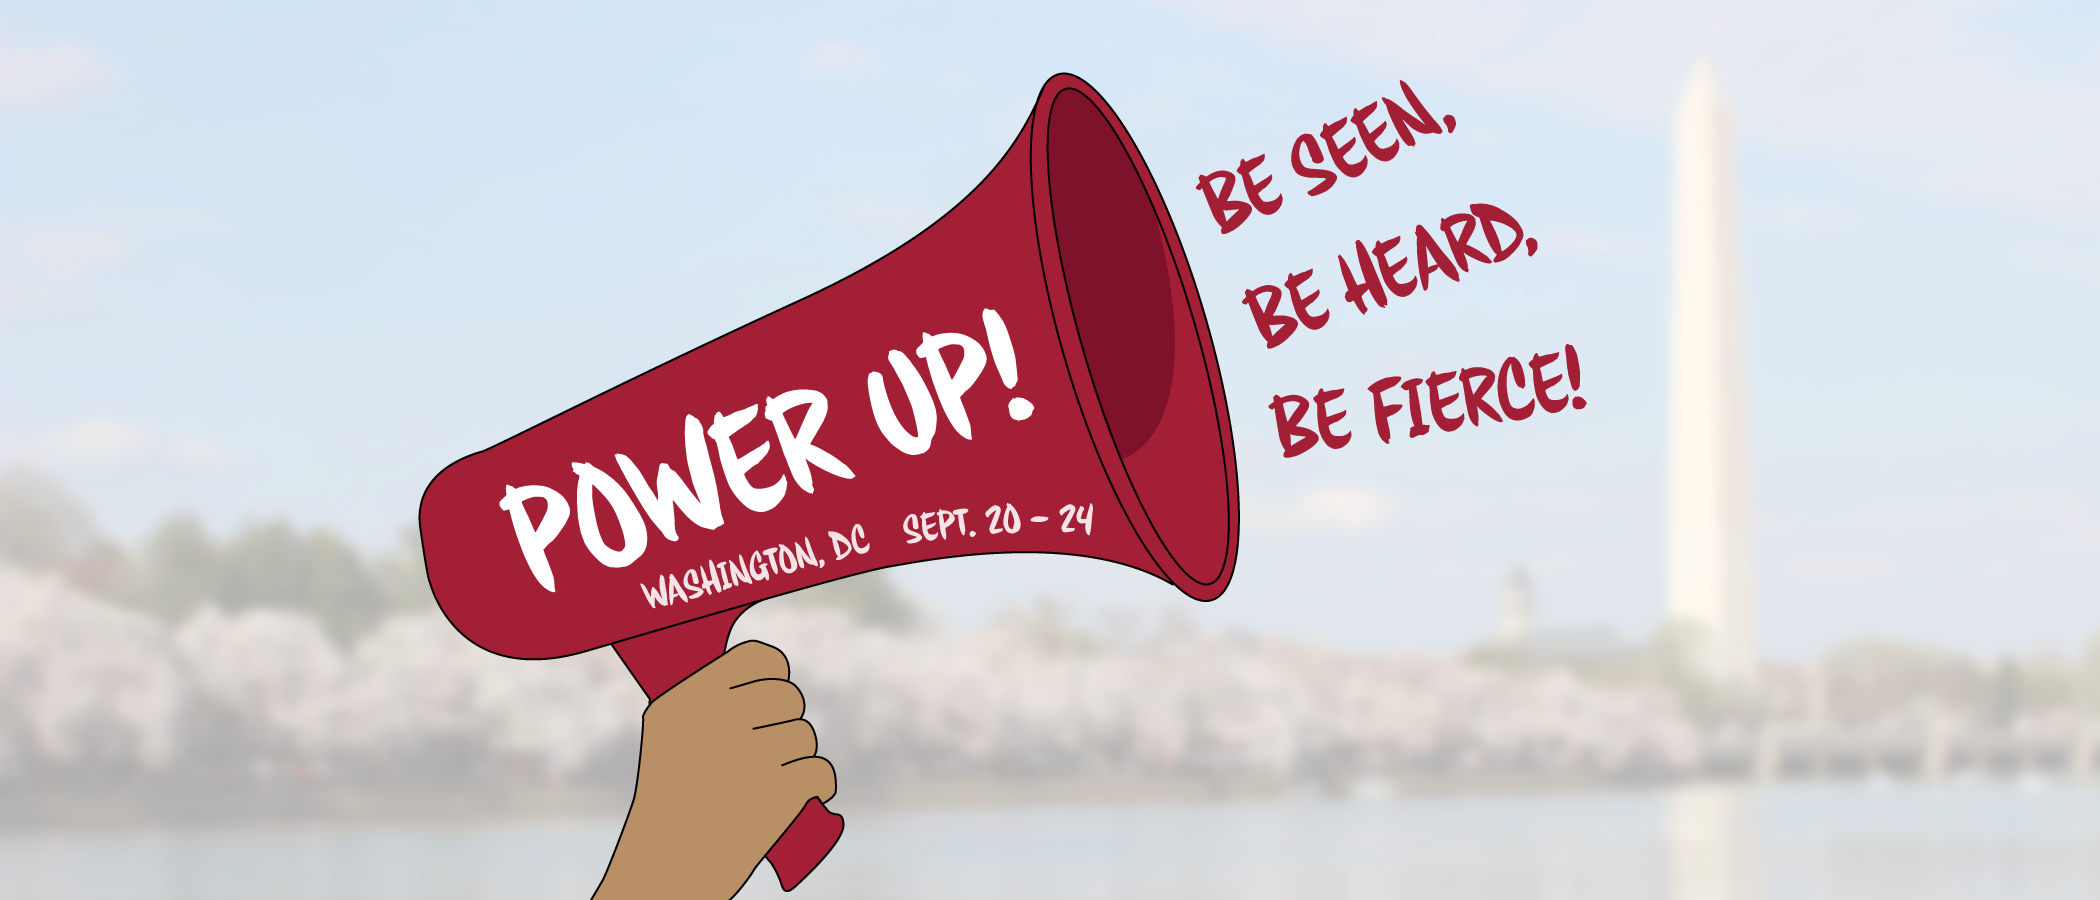 Power Up! Be Seen, Be Heard, Be Fierce! In Washington, DC, from September 20th to 24th, 2019.